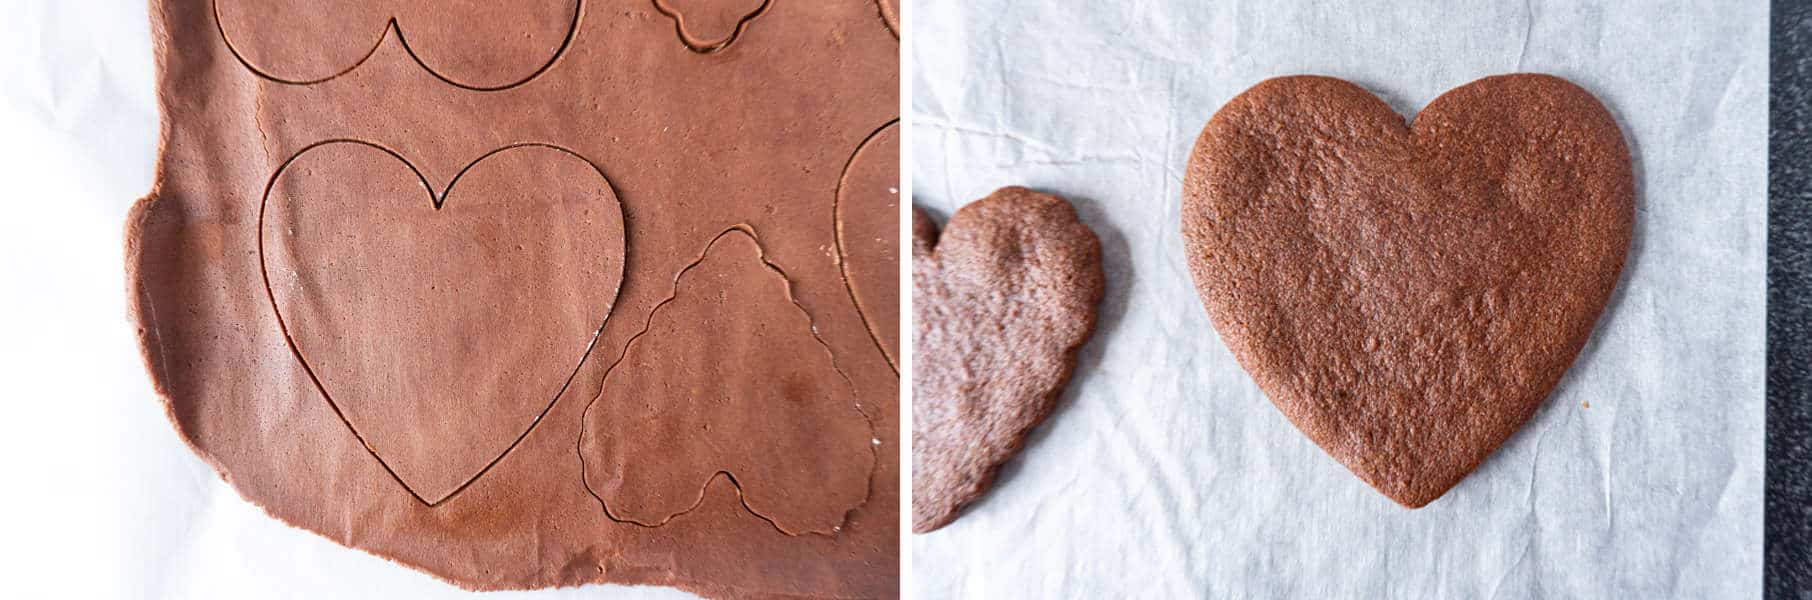 Chocolate Cherry Heart Cookies cut out of dough and then baked side by side